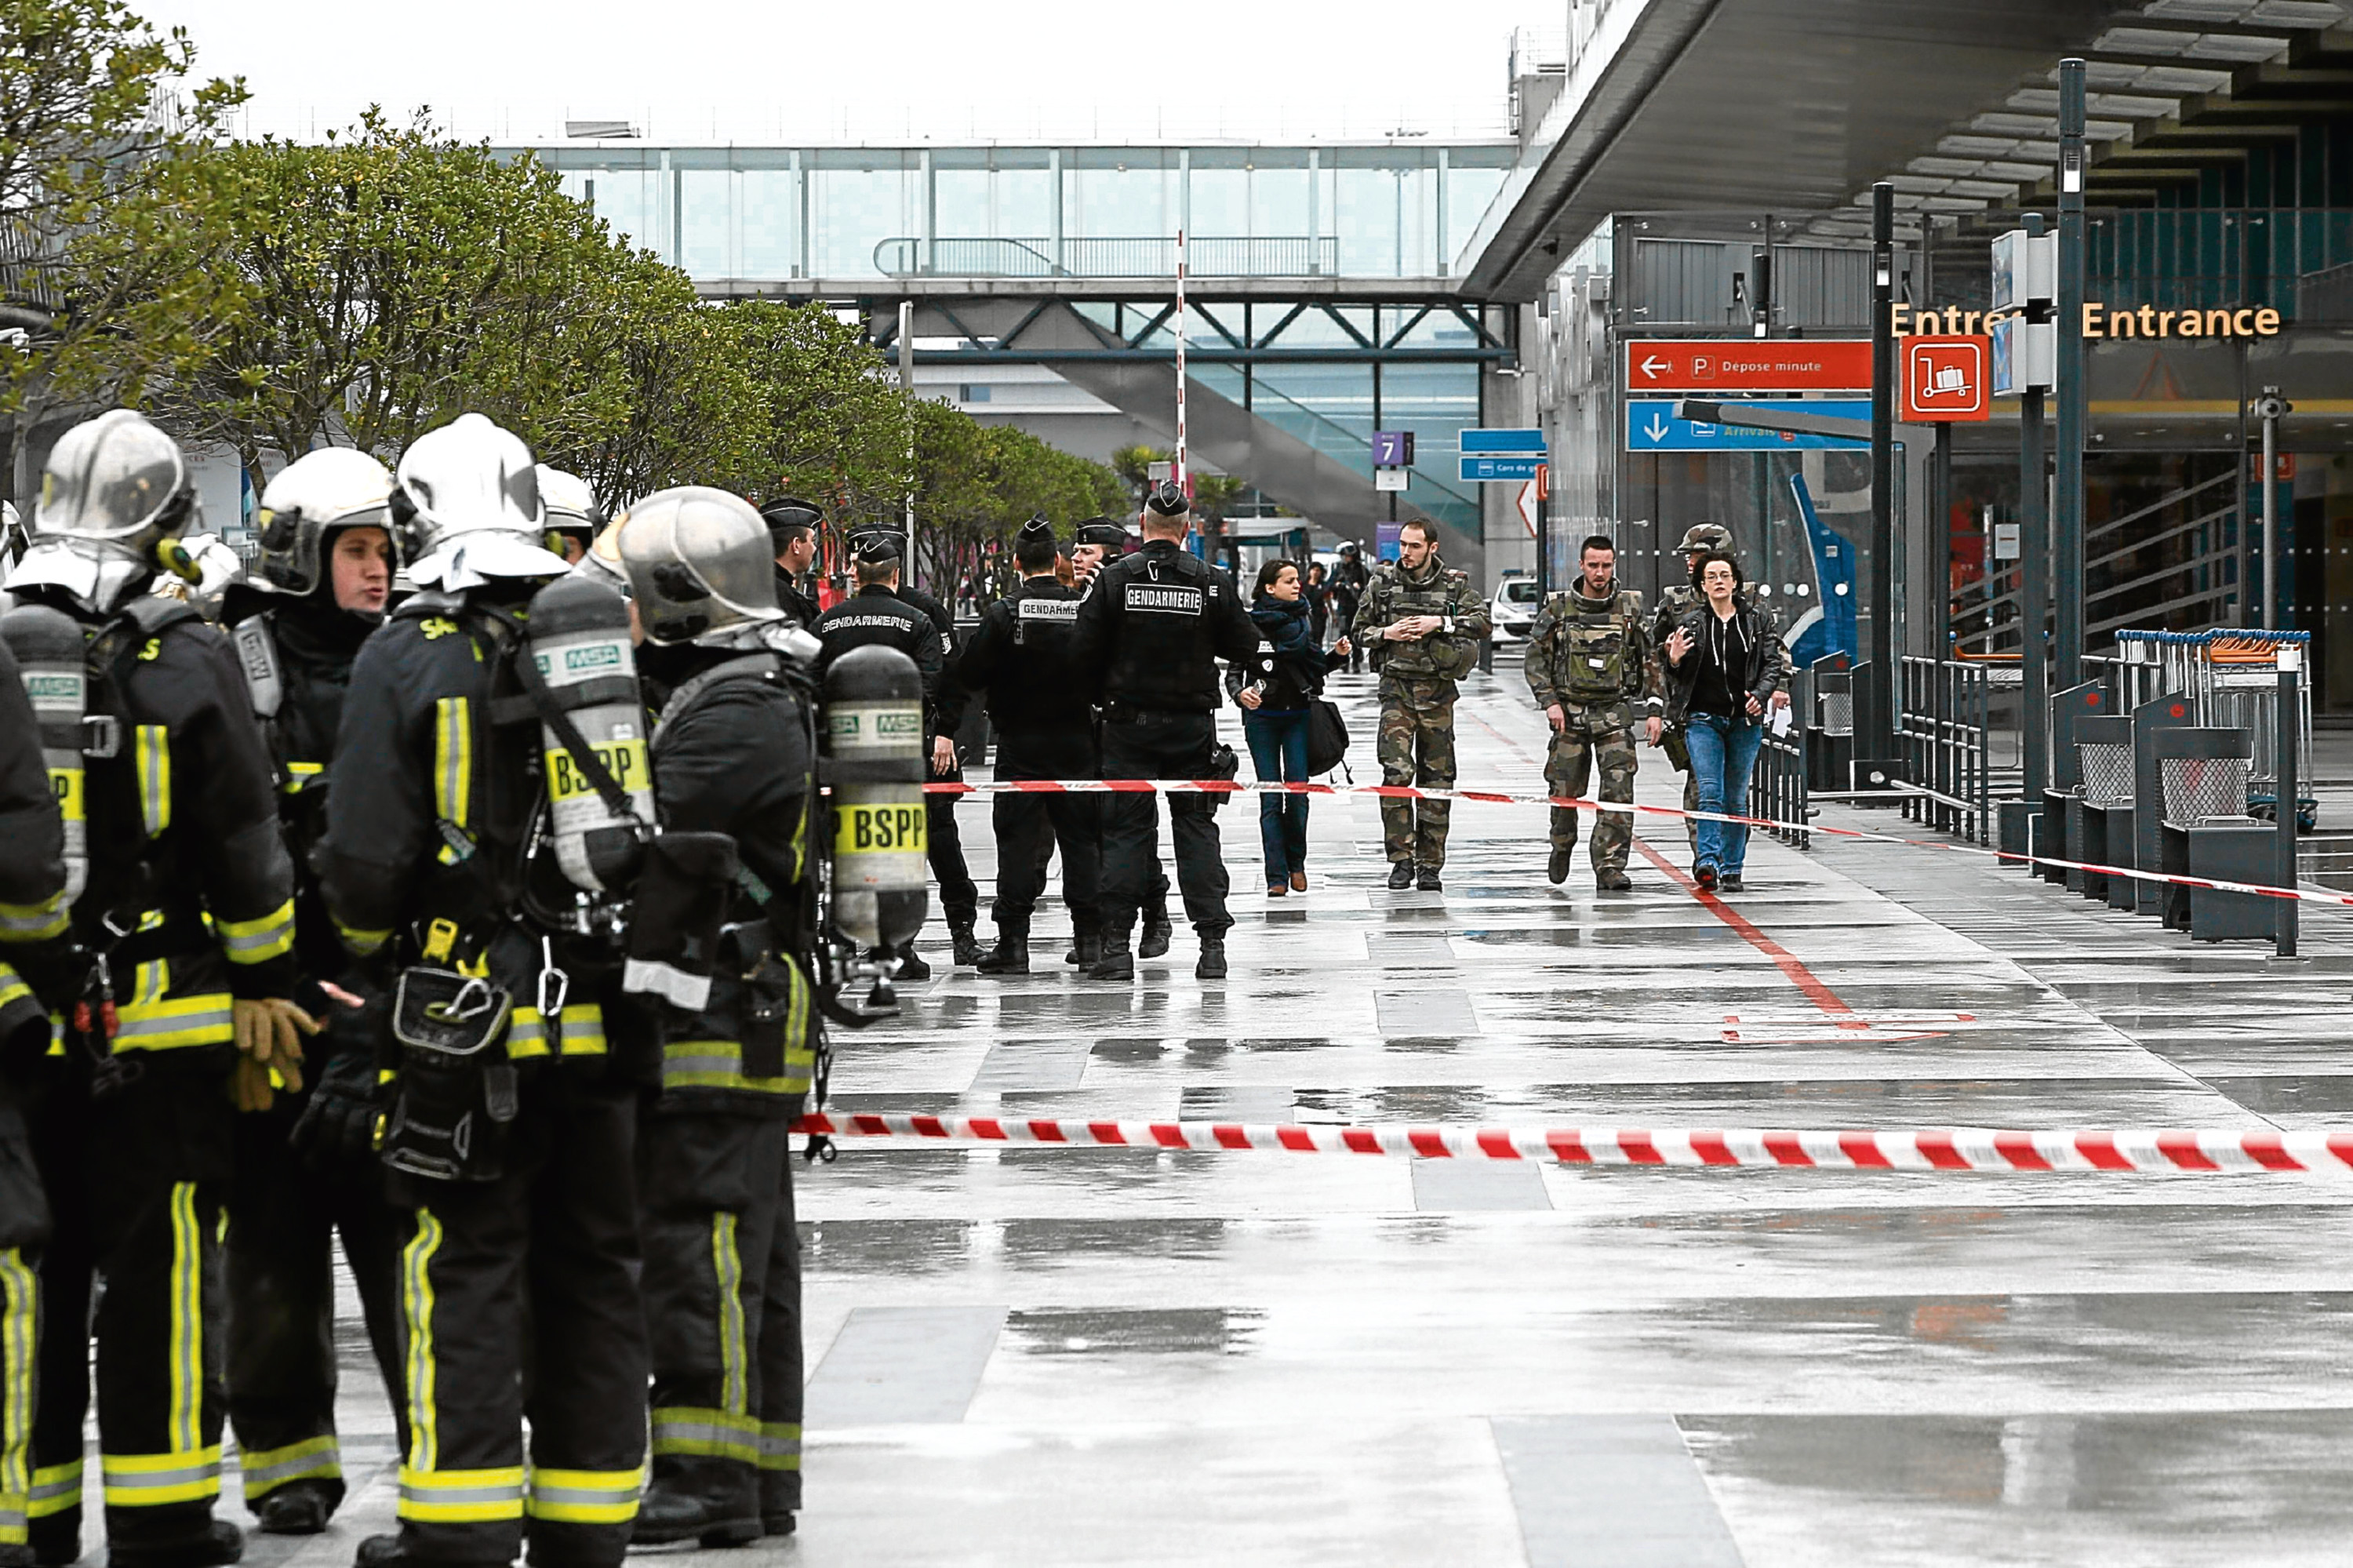 A man was shot dead after wrestling a soldier to the ground at Paris' Orly Airport and trying to take her rifle, officials said. No one else in the busy terminal was hurt, but thousands of travelers were evacuated and flights were diverted to the city's other airport. (AP Photo/Thibault Camus)